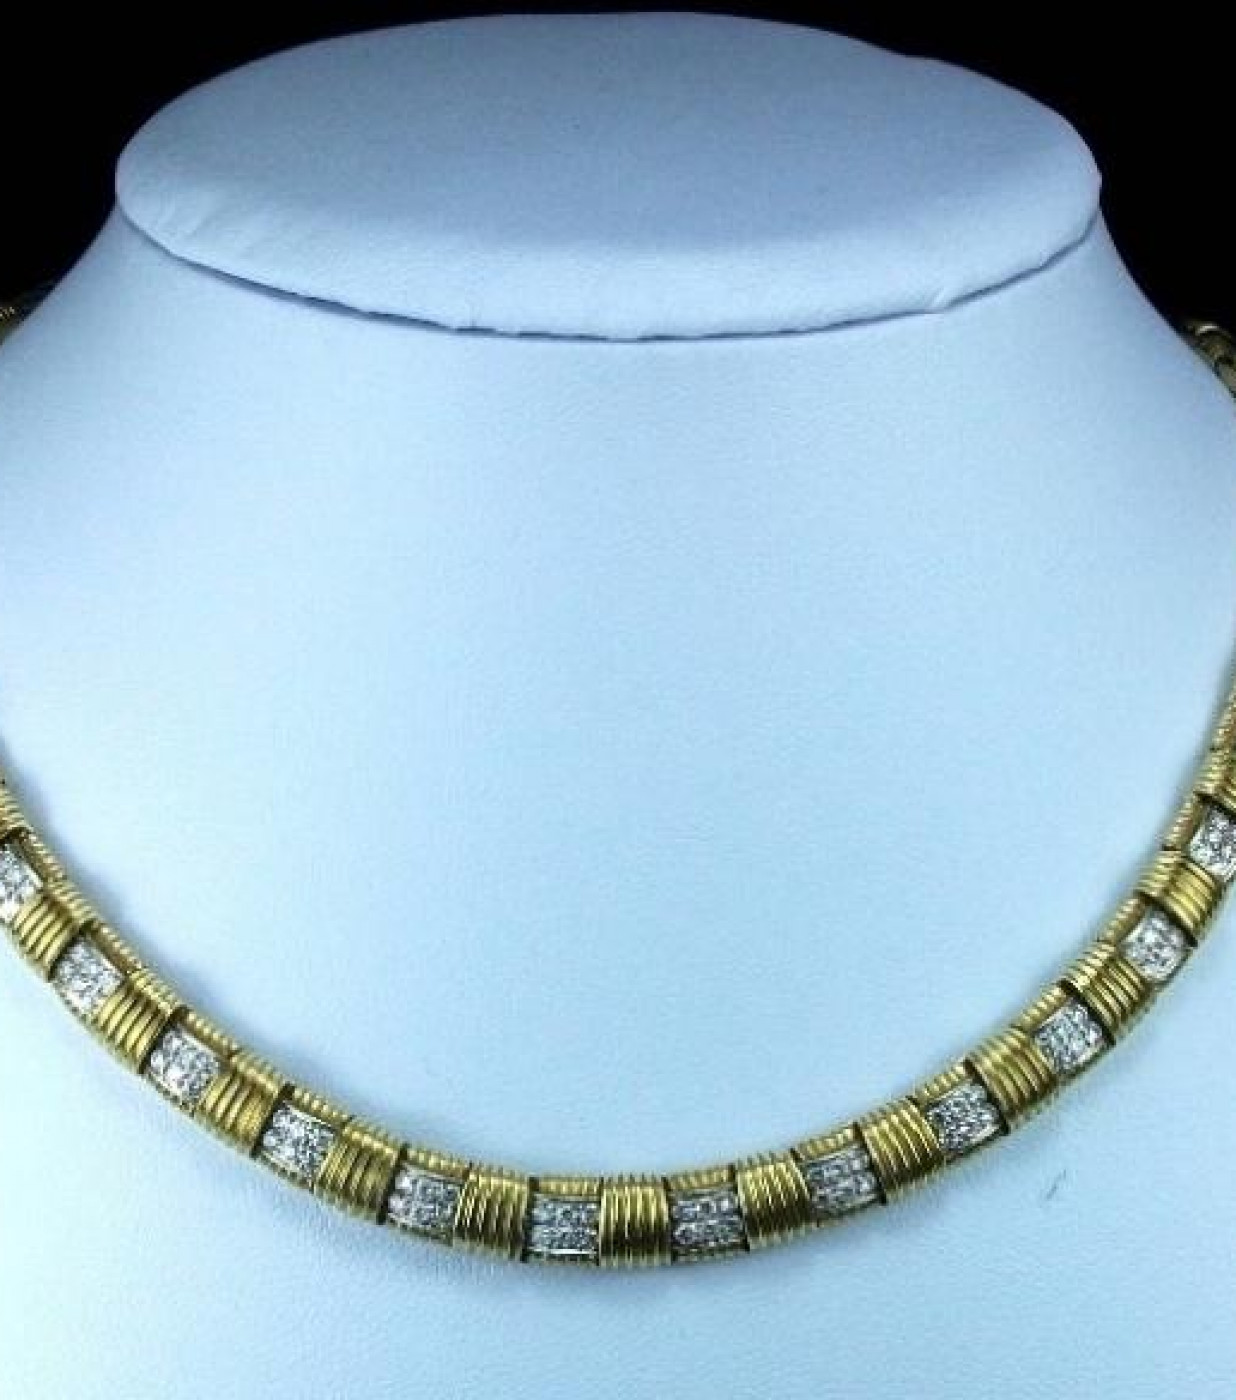 Rarest Gold and Diamonds Necklace and Ring